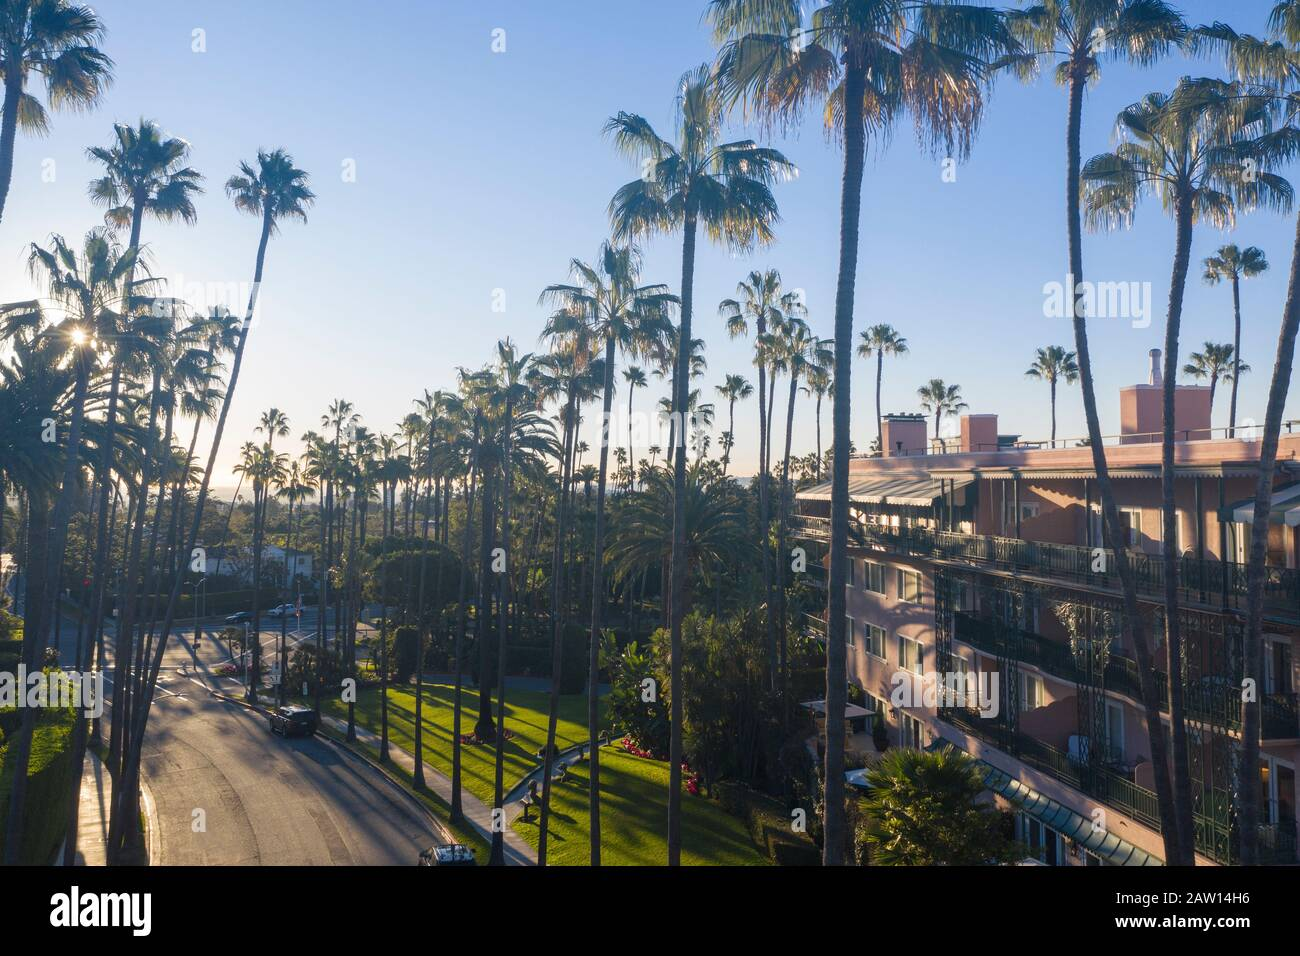 Stunning aerial view of Beverly Hills neighborhood, Beverly Hills Hotel, and Sunset Boulevard surrounded with palm trees in Los Angeles, California. Stock Photo